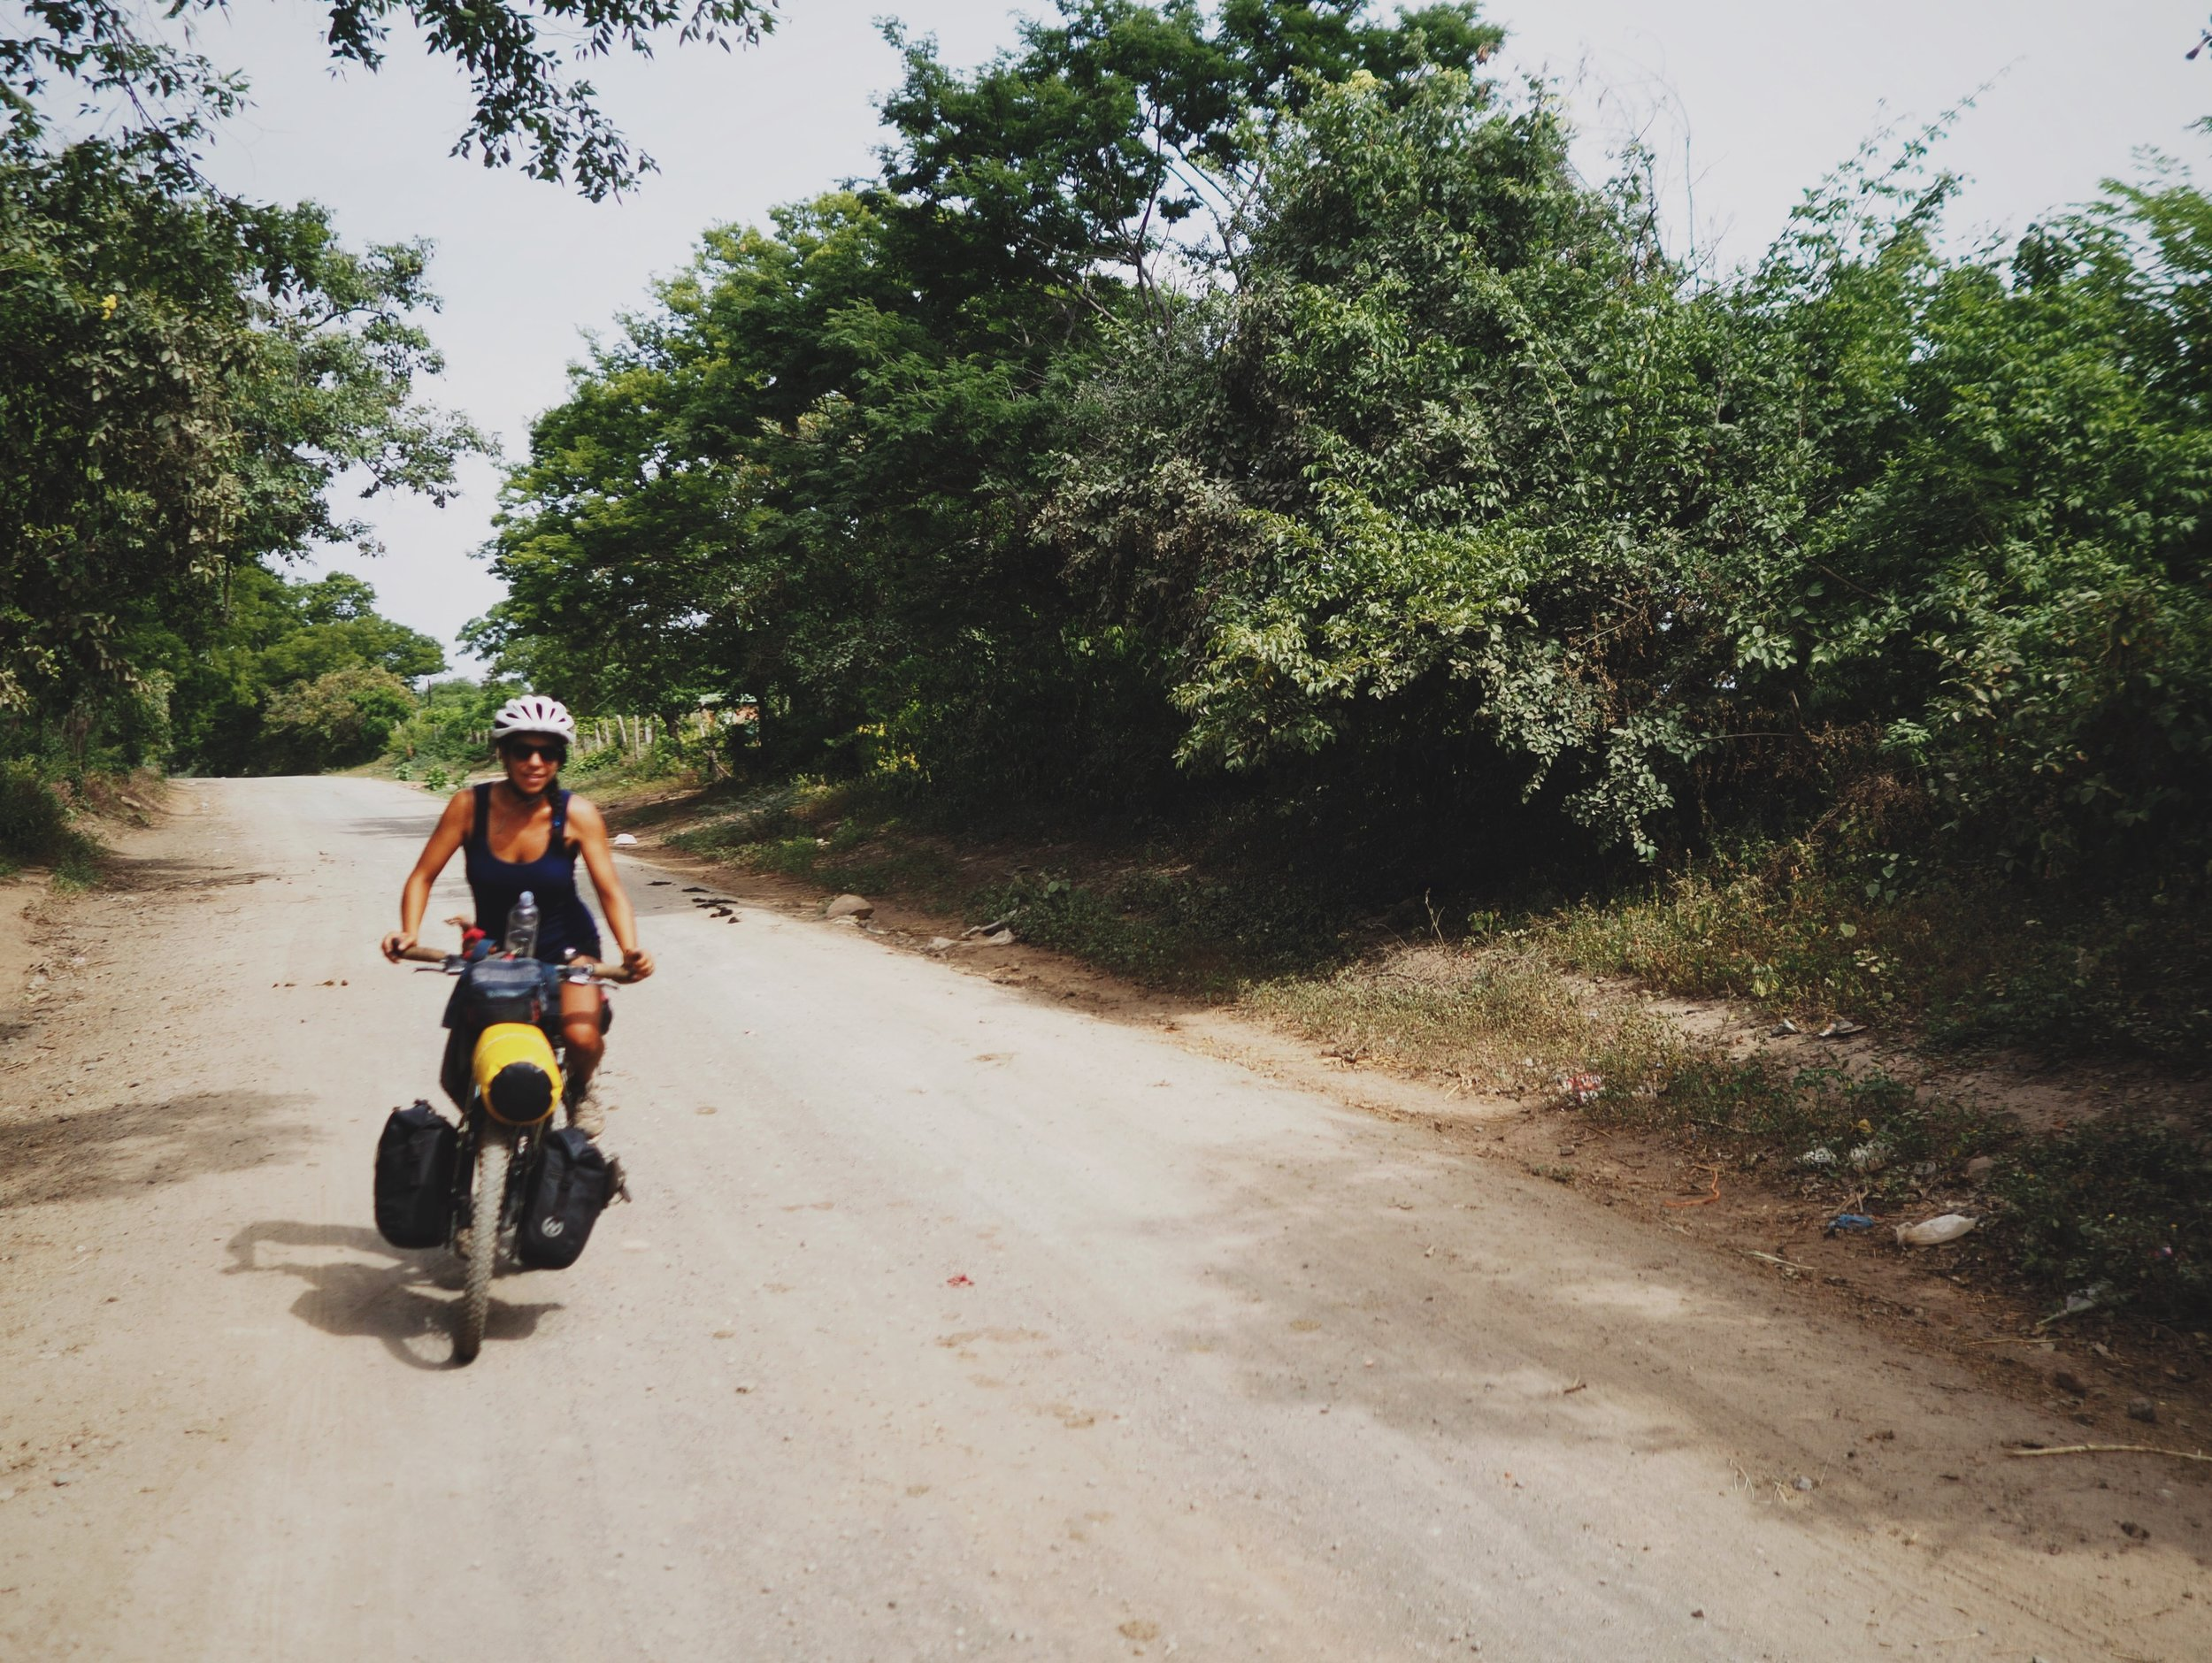 Heading out of Leon, we hopped on dirt roads almost immediately